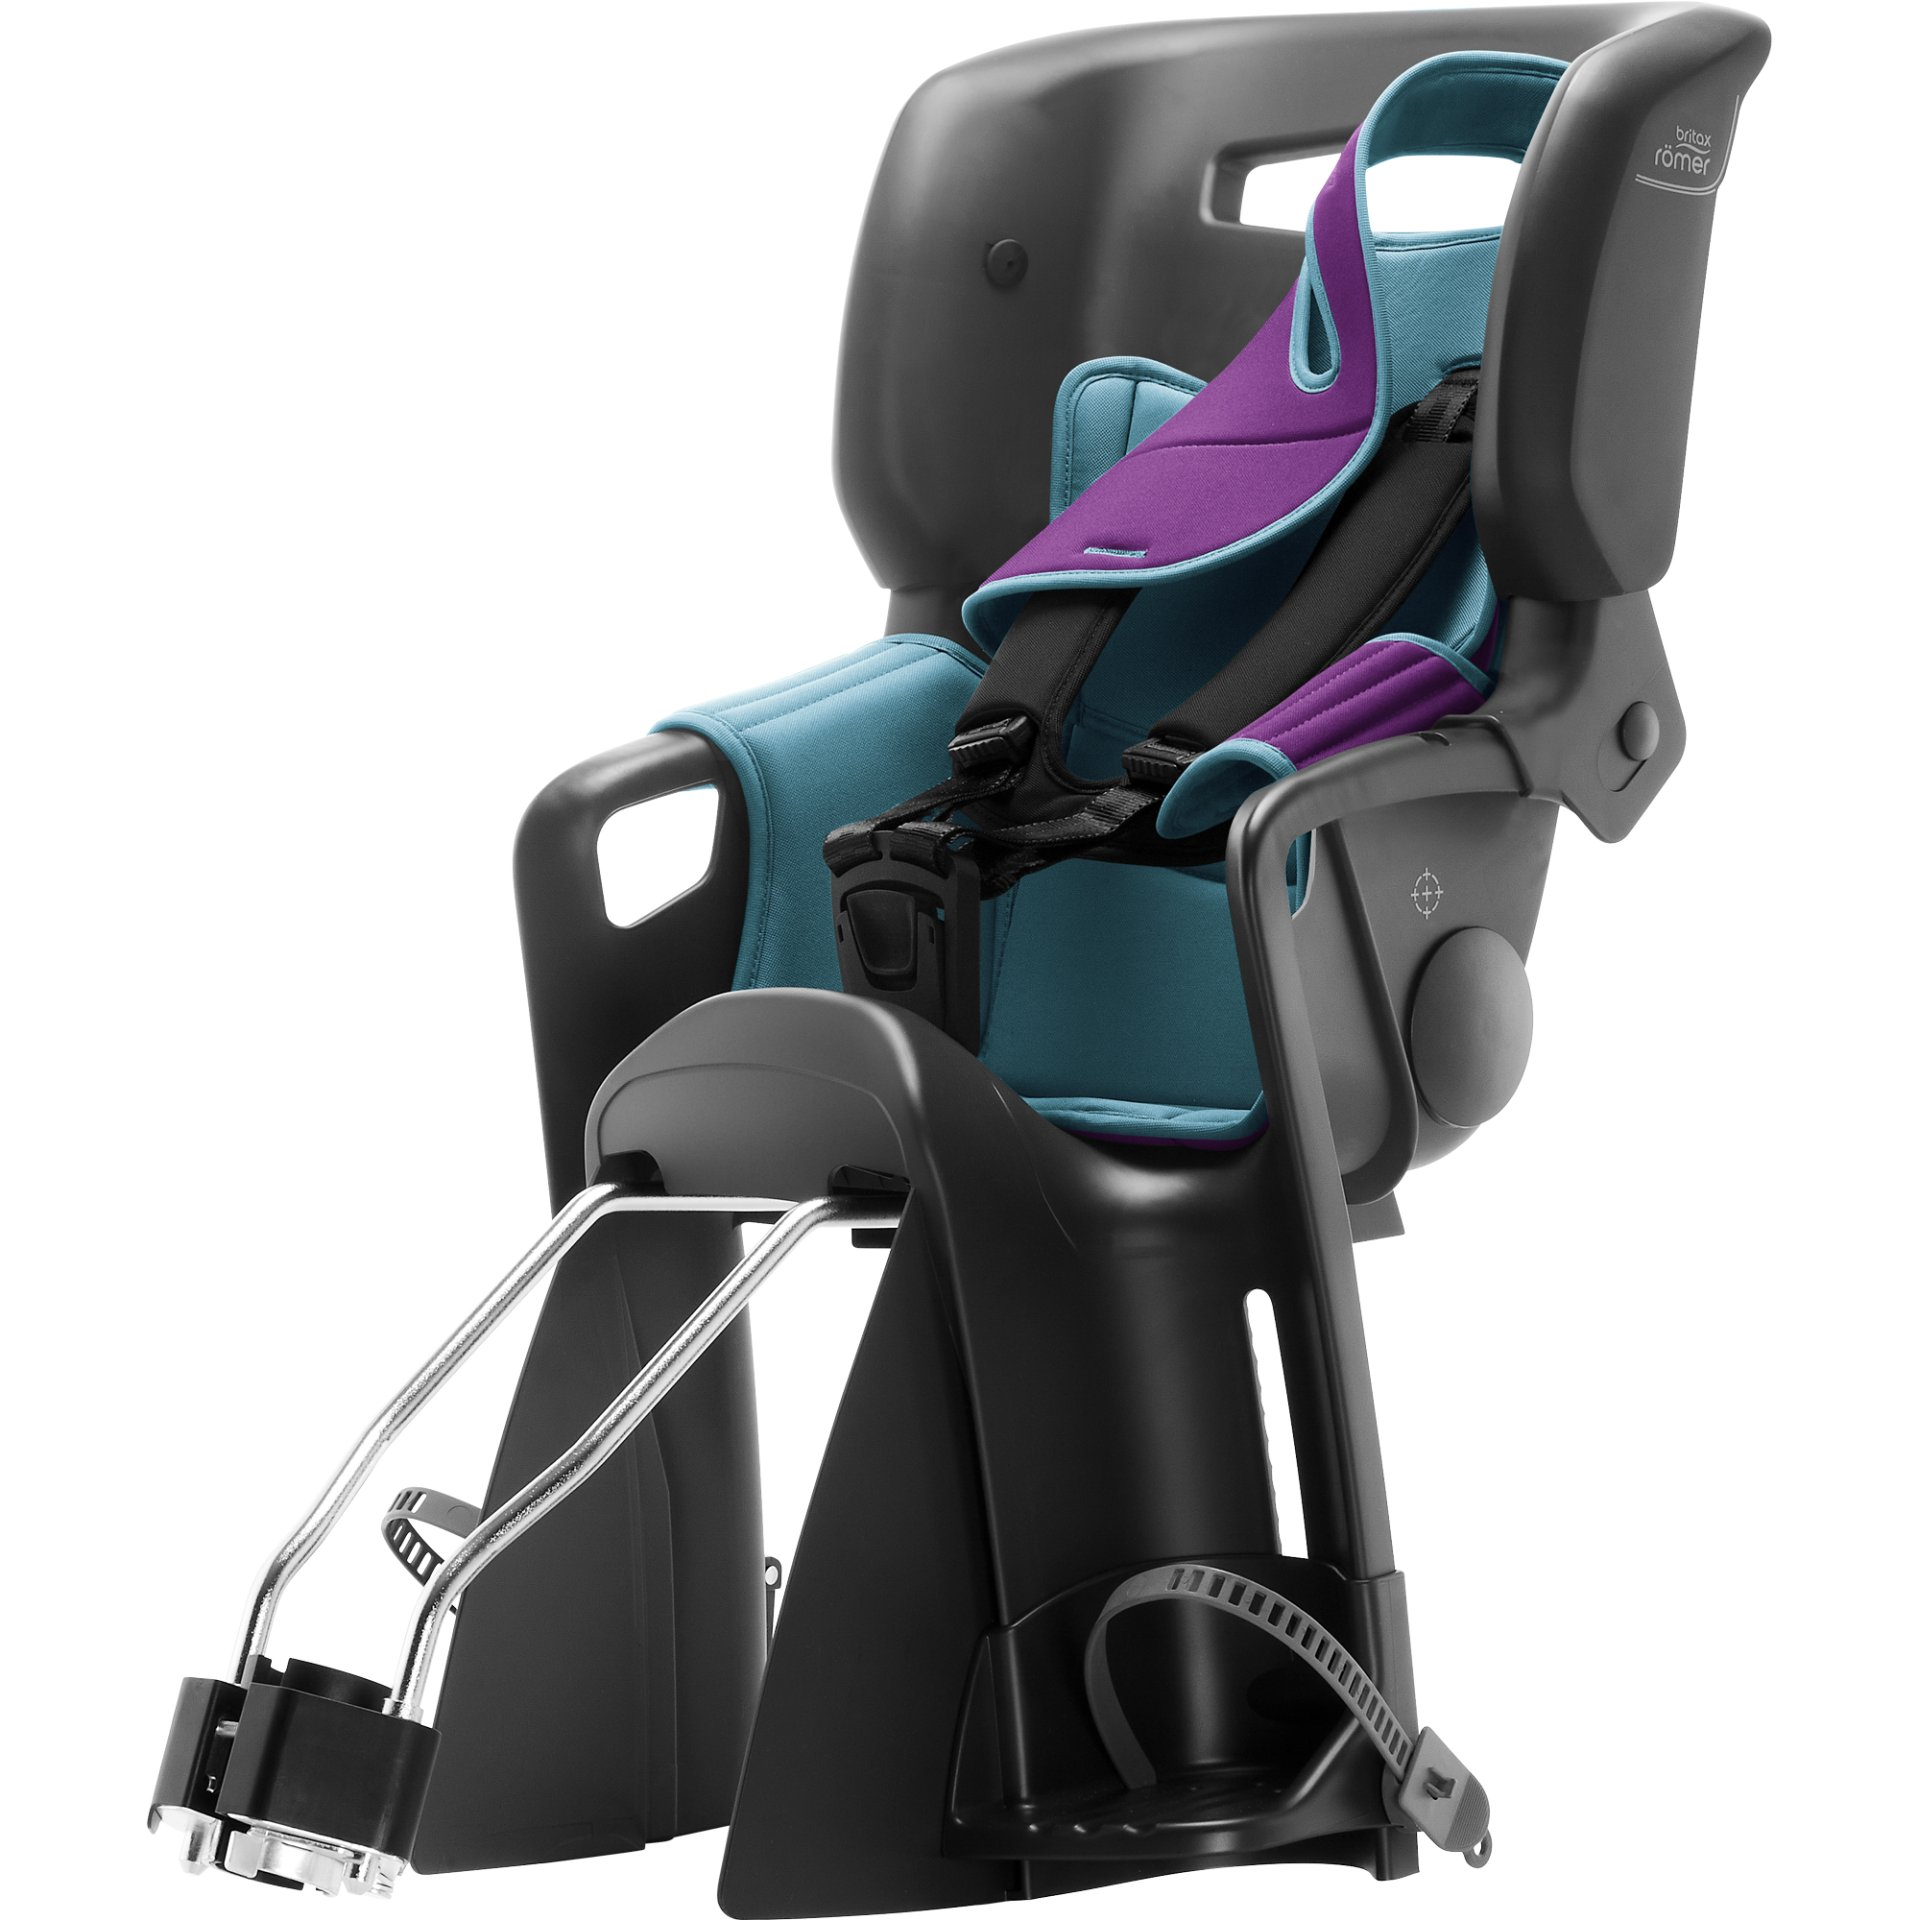 britax r mer fahrradsitz jockey 2 comfort 2019 turquoise. Black Bedroom Furniture Sets. Home Design Ideas